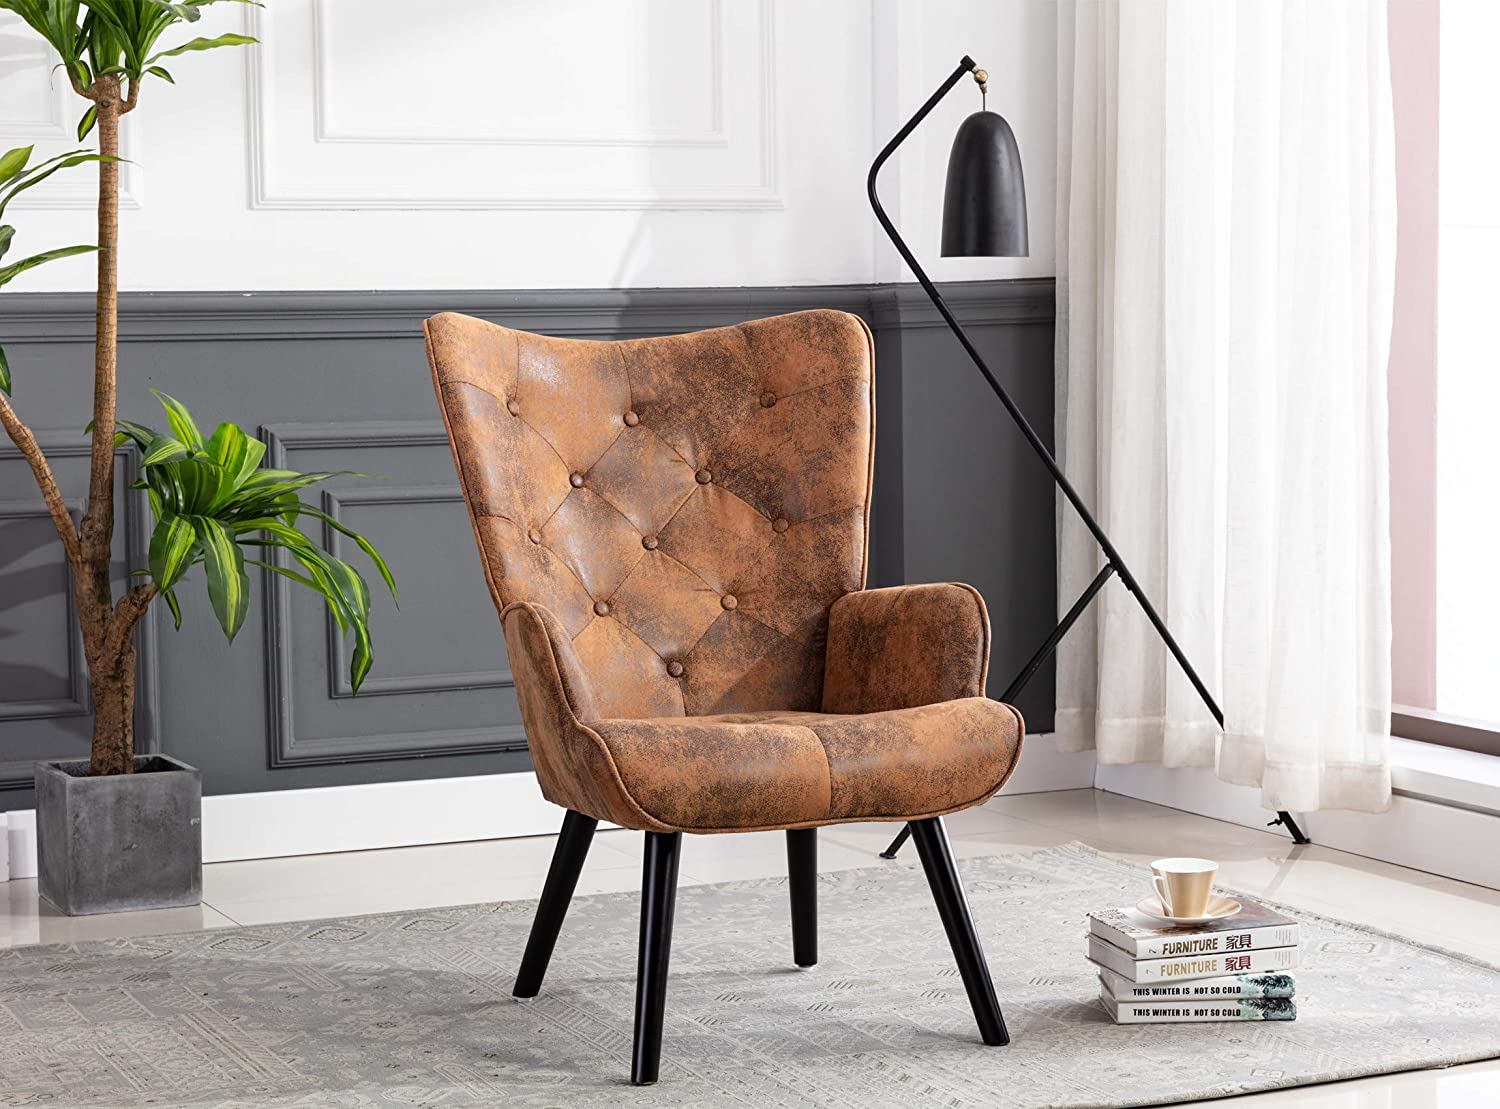 Brown Dolonm Rustic Accent Chair Vintage Wingback Chair Microfiber Cushioned Mid Century Tall Back Desk Chair with Arms Solid Wood Legs for Reading Living Room Bedroom Waiting Room